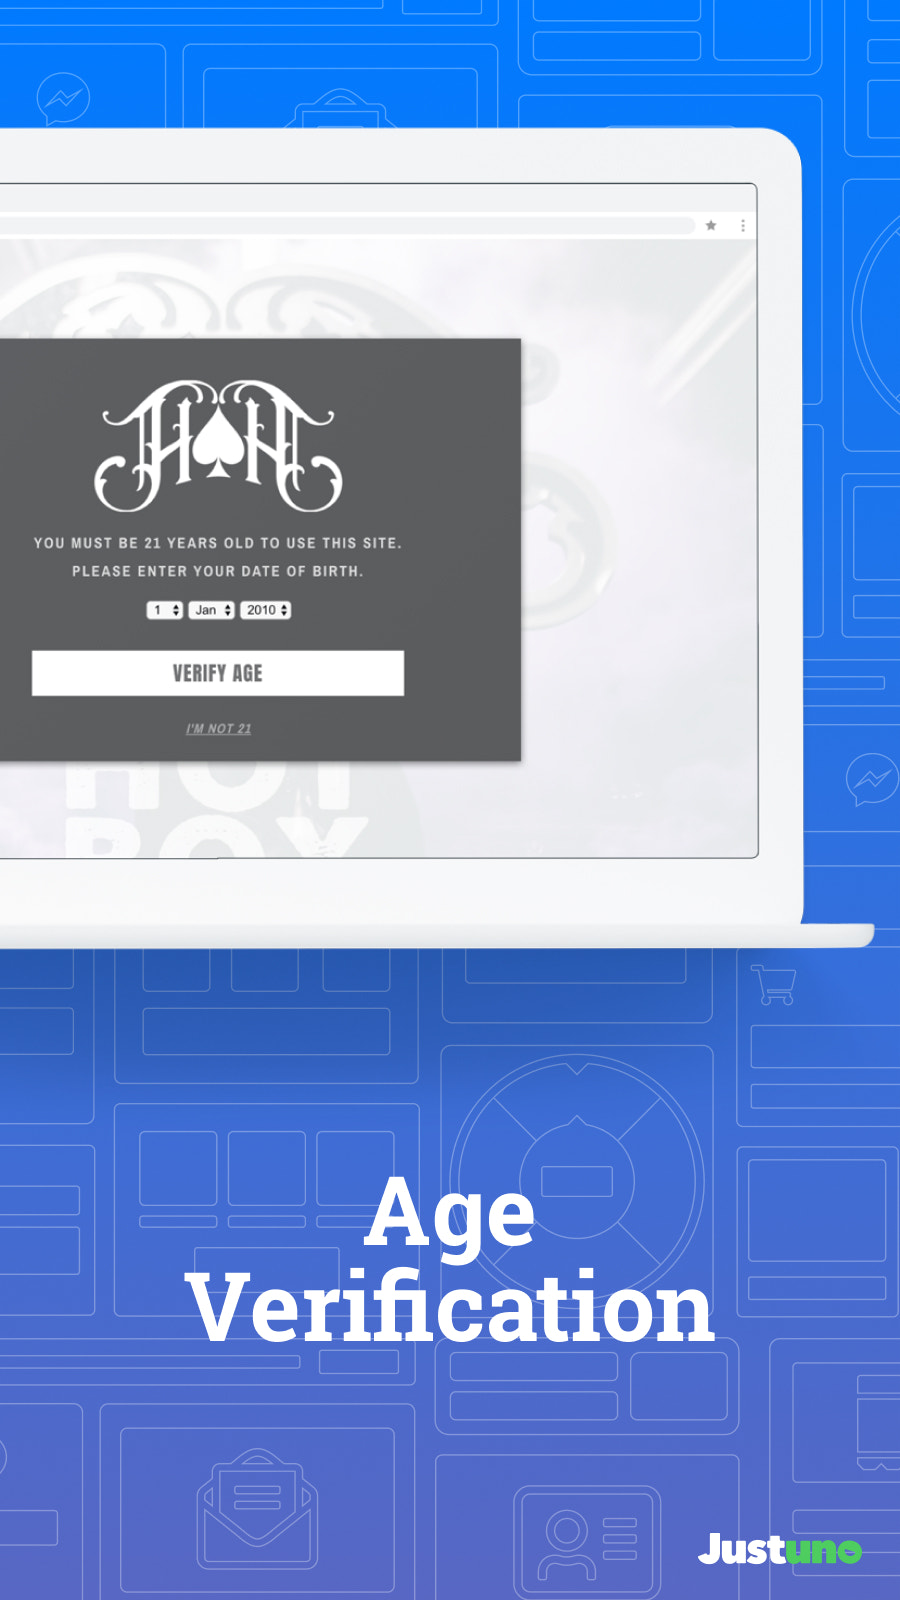 Age verification gating and other advanced specialty use-cases